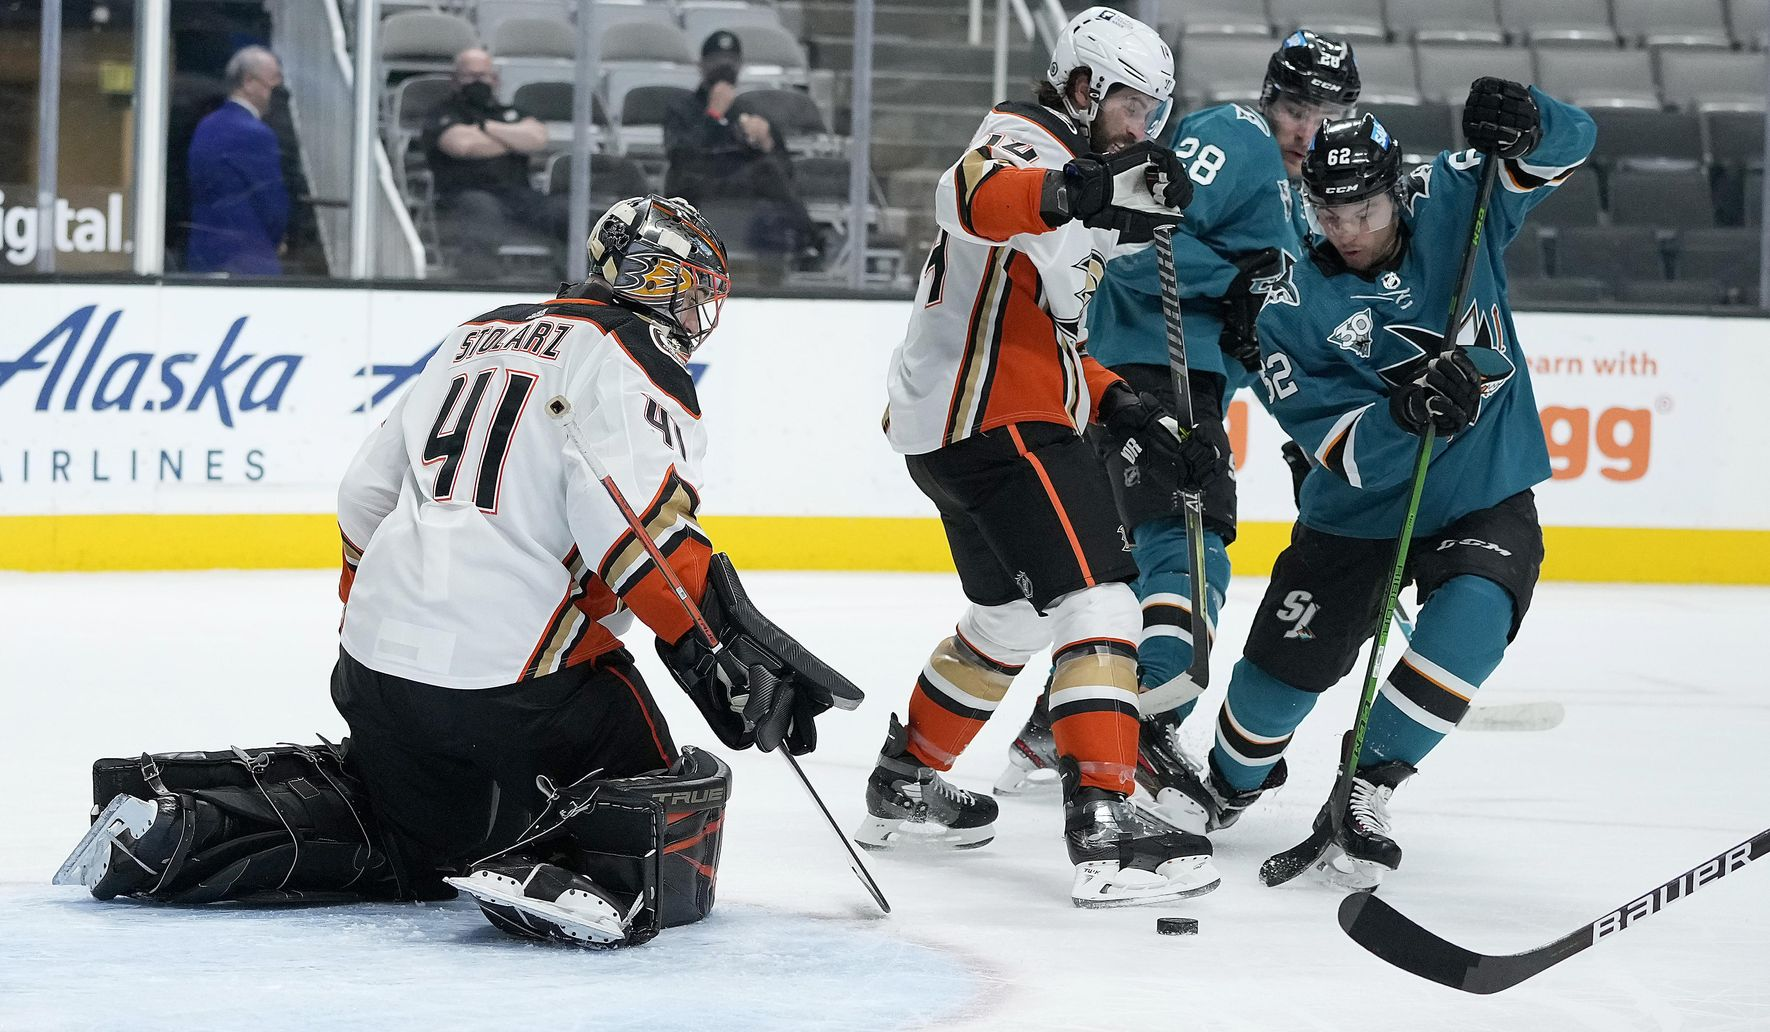 Ducks_sharks_hockey_46762_c0-67-4864-2902_s1770x1032